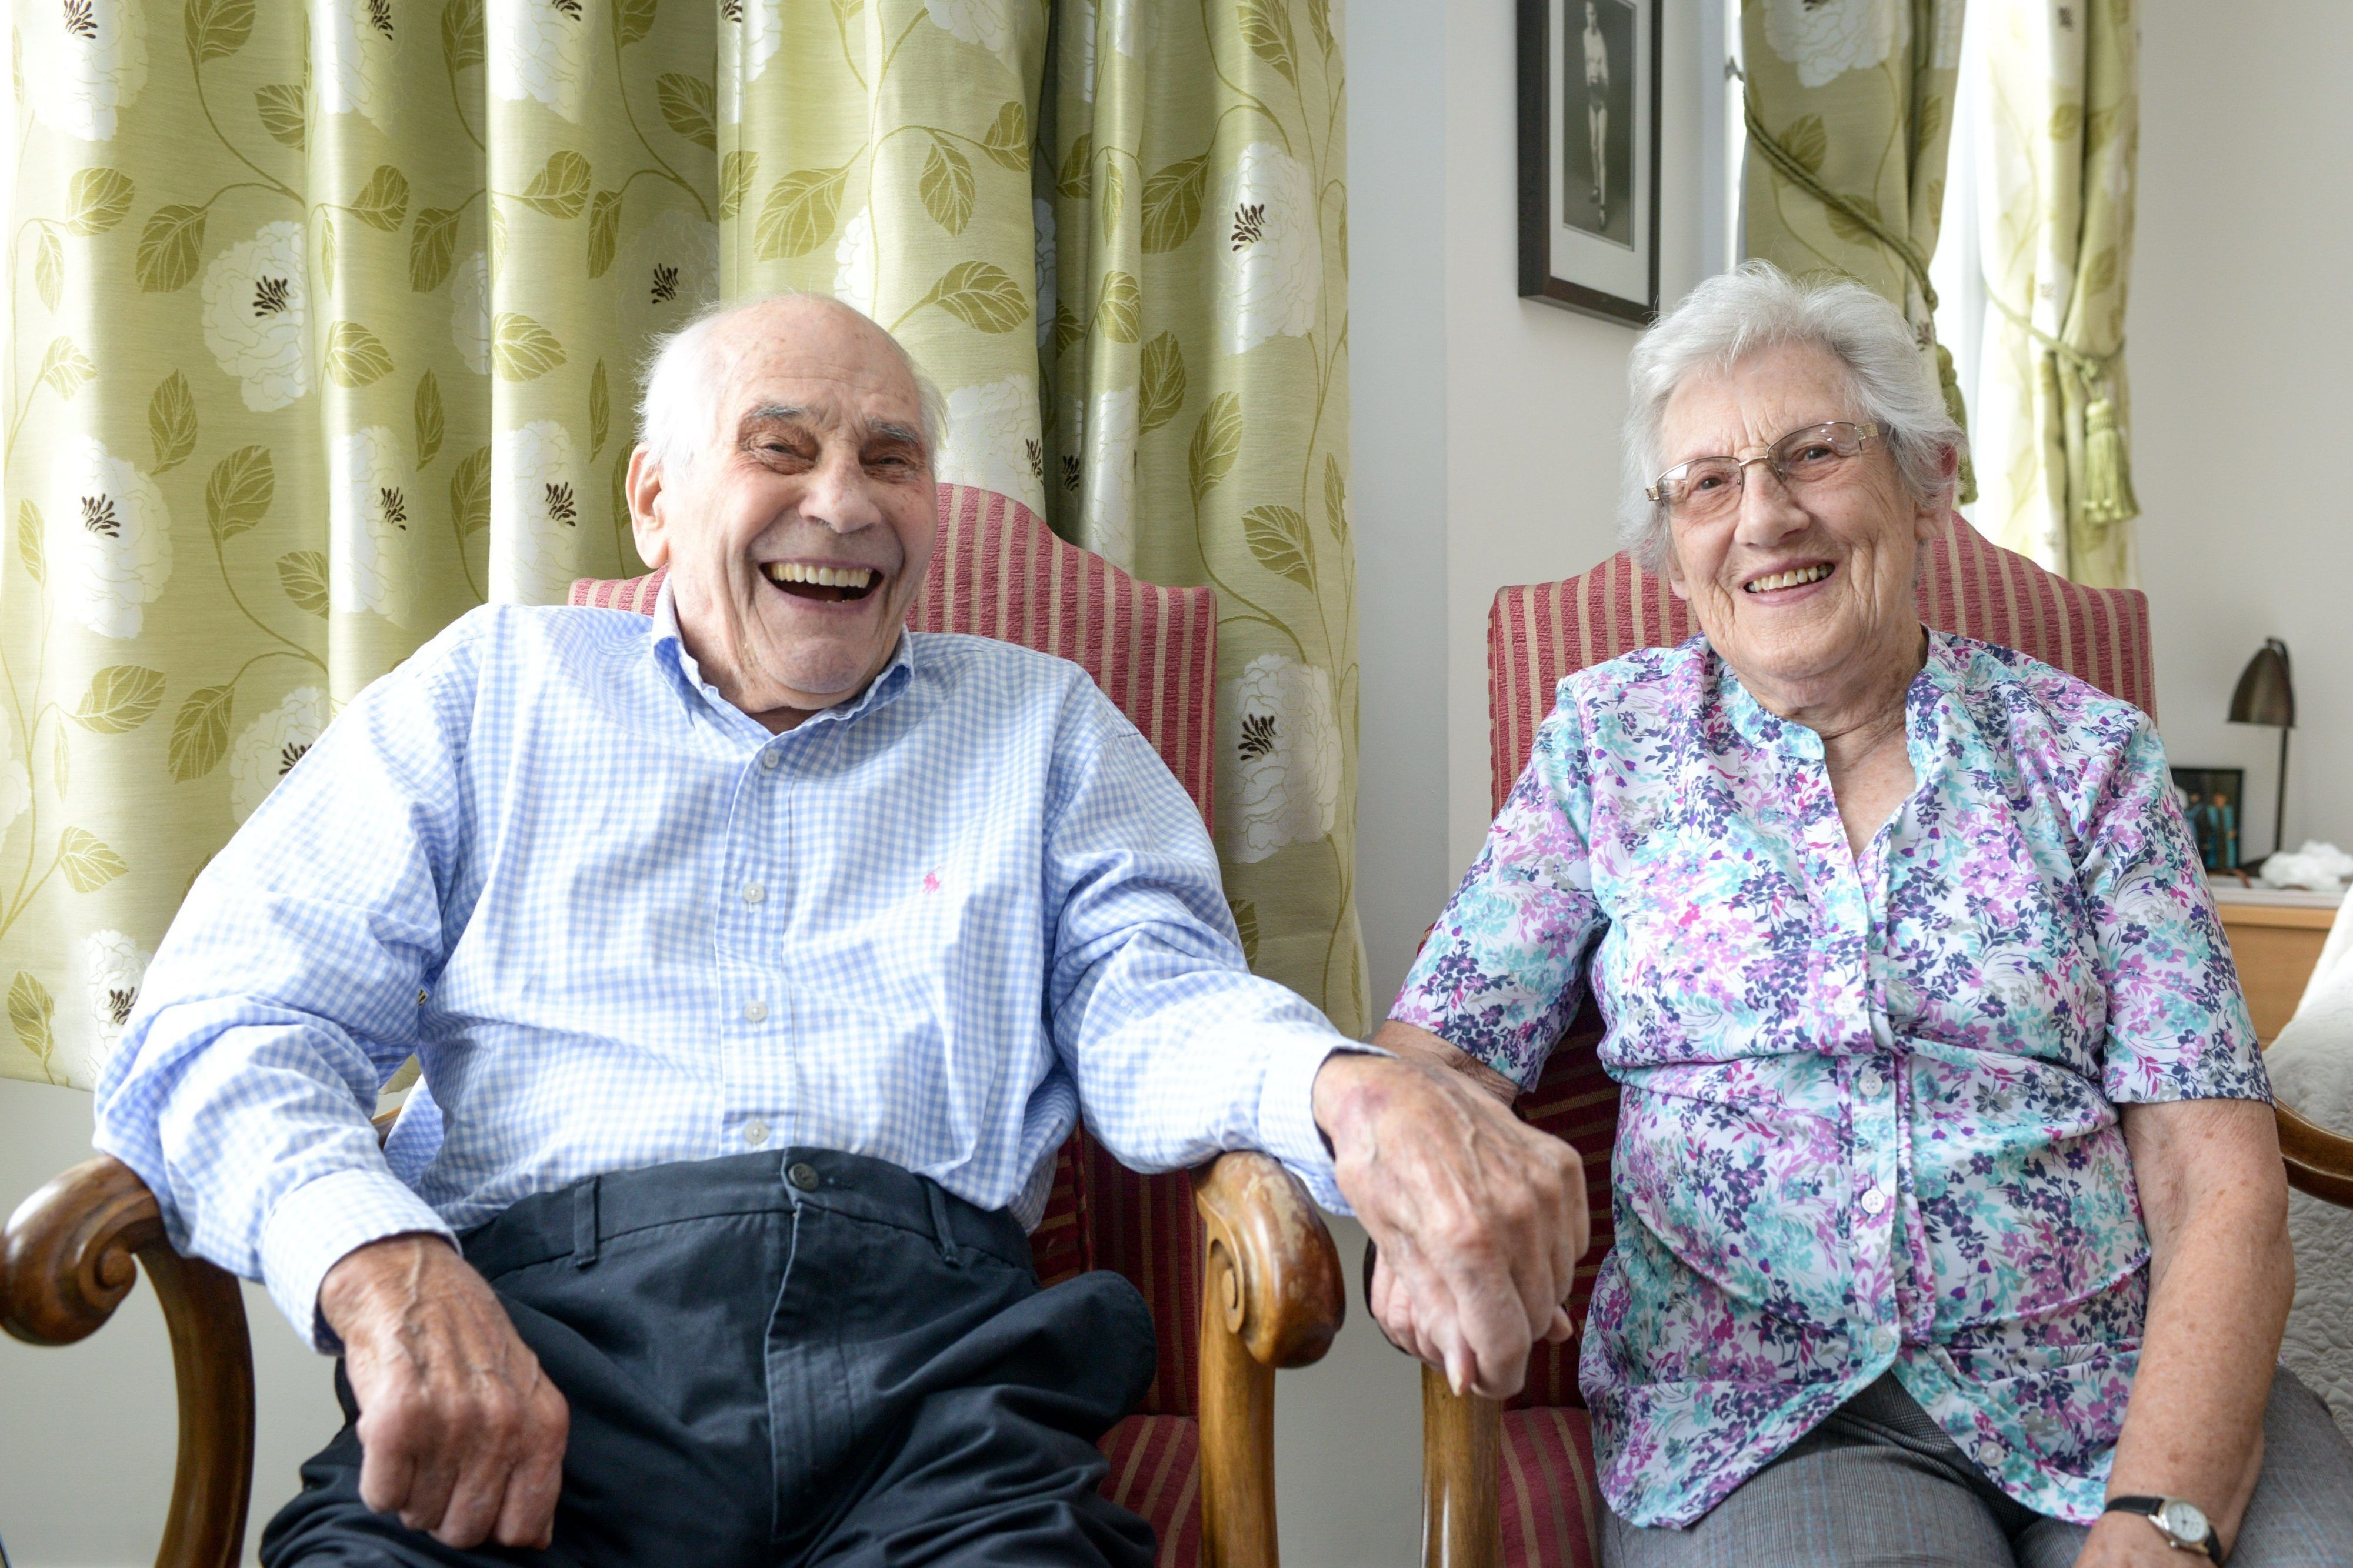 This 102-Year-Old Man Finally Proposed to His 91-Year-Old Girlfriend